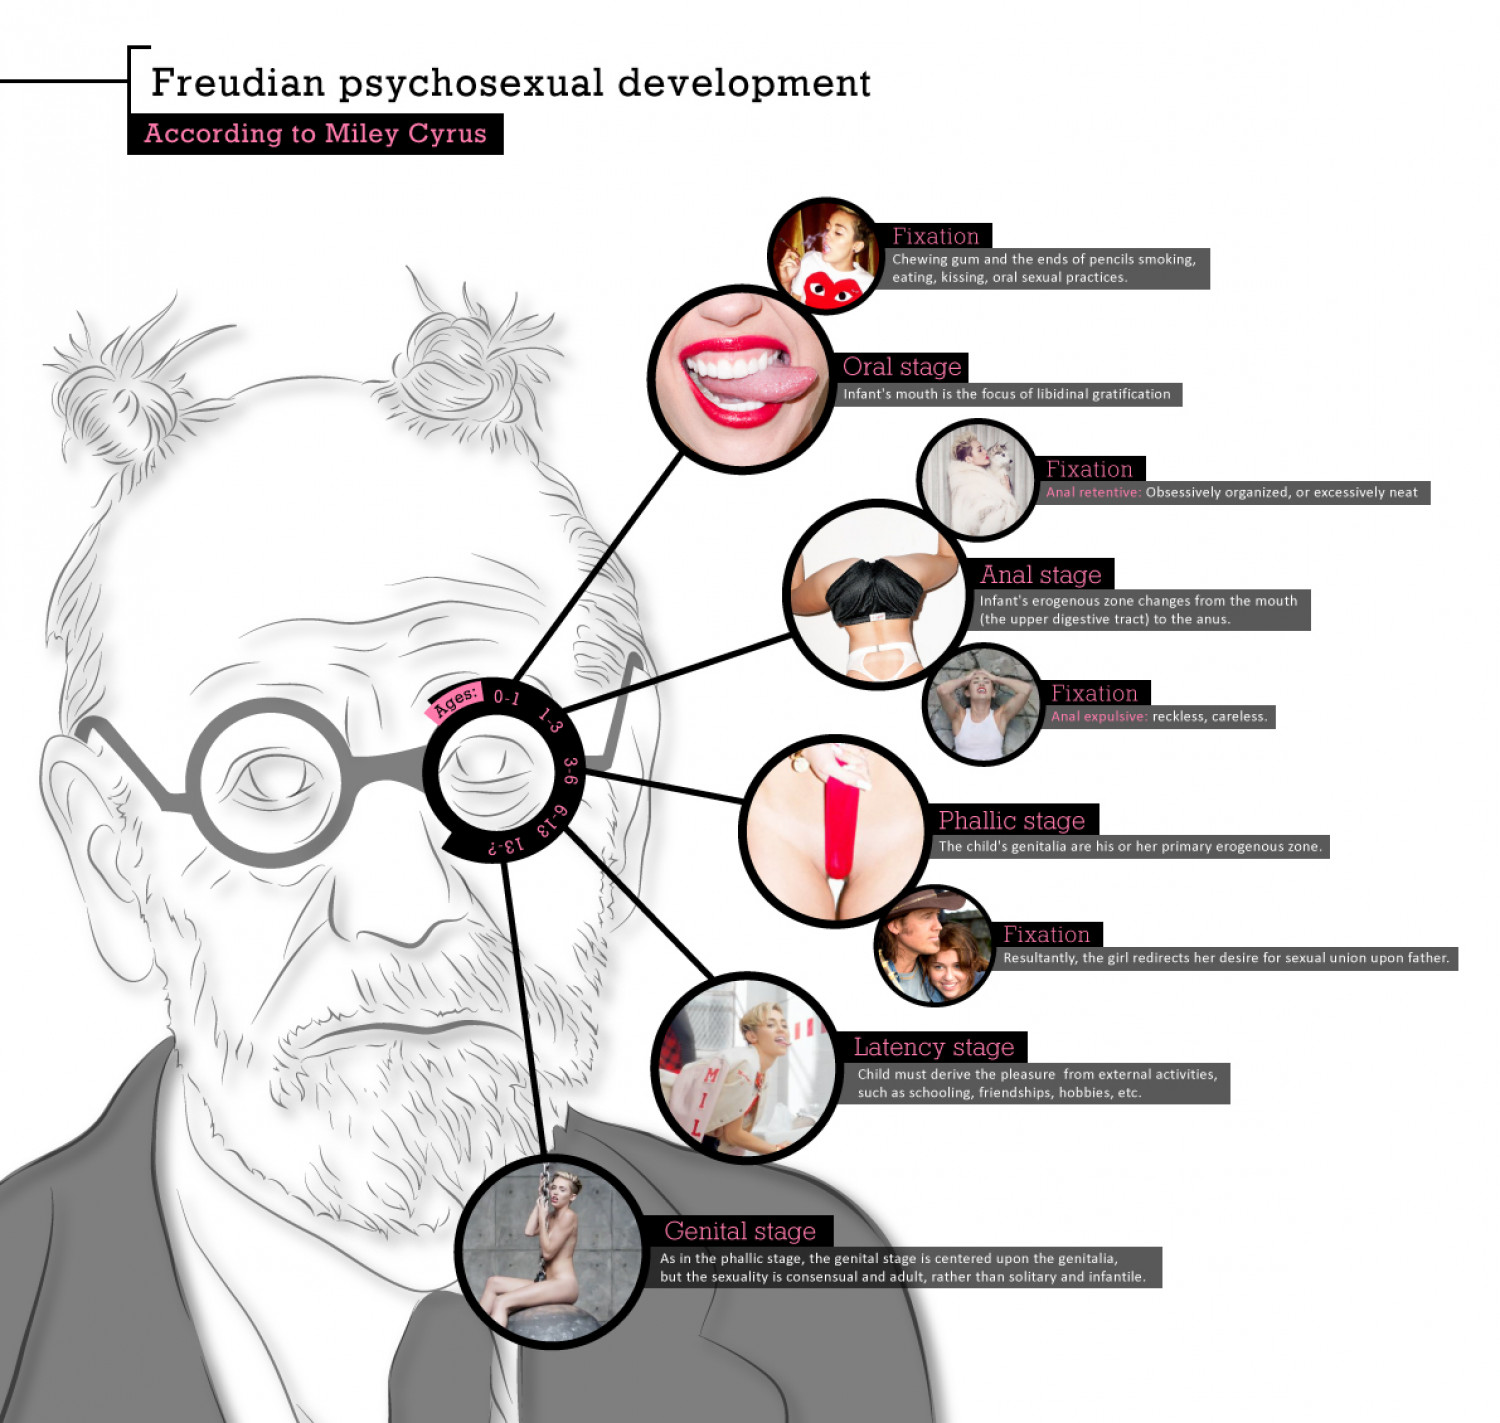 Freud's psychosexual  development according to miley cyrus Infographic